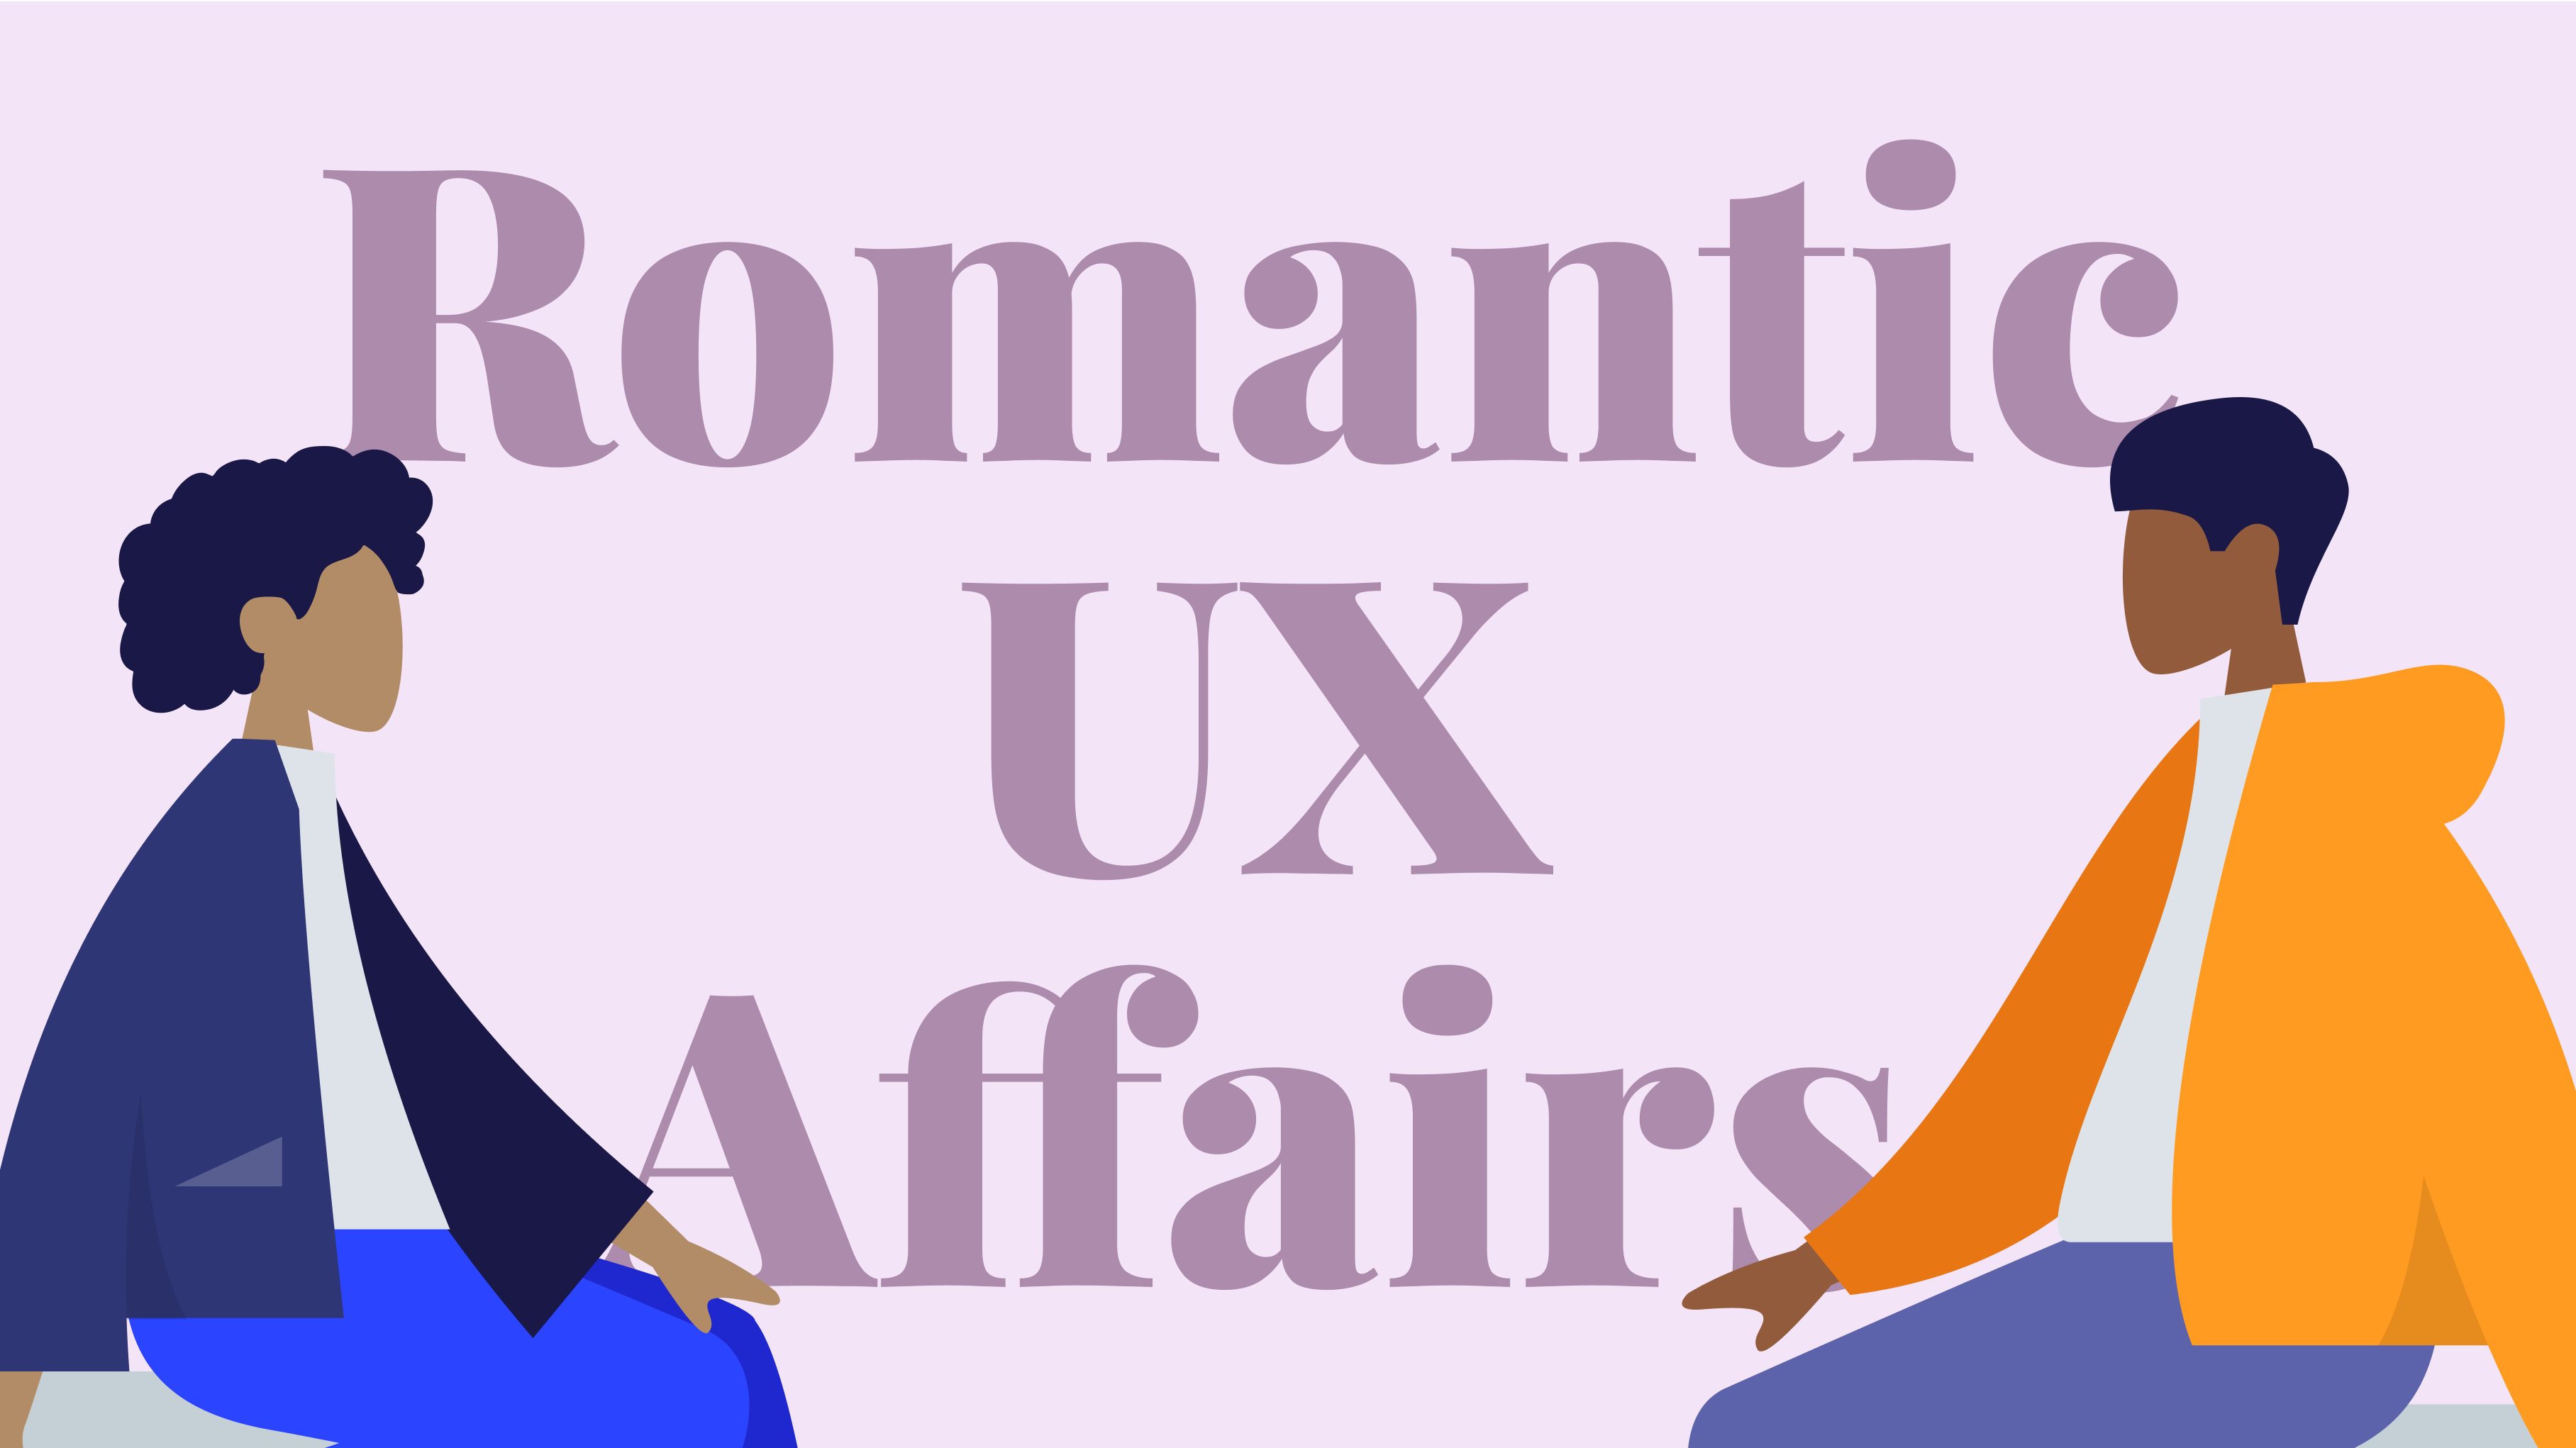 Medium Article: Romantic UX Affairs